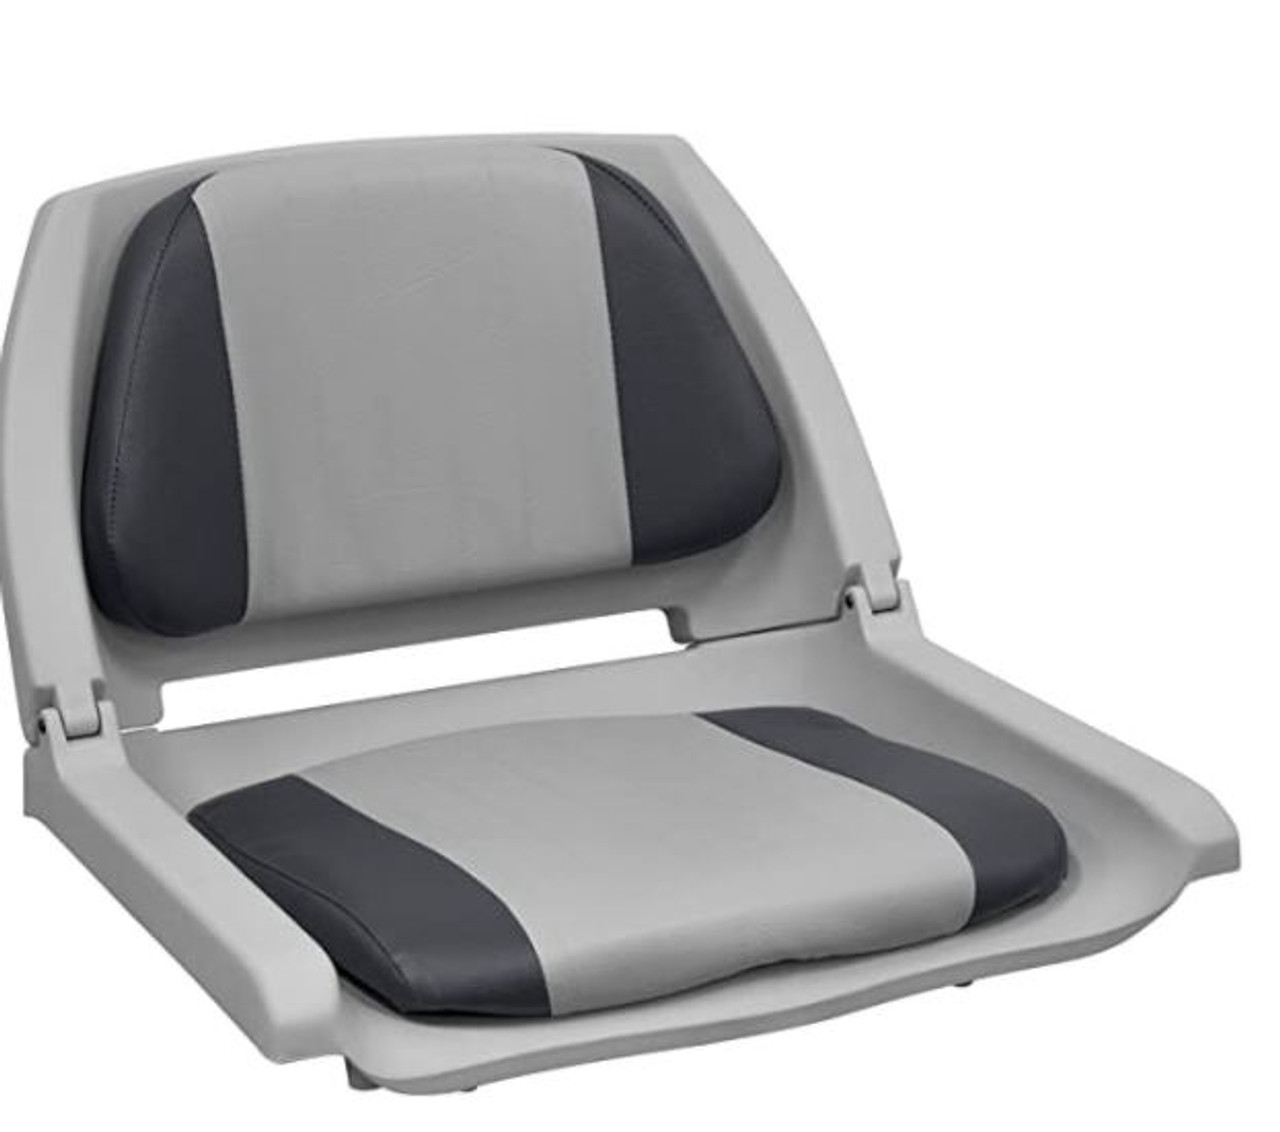 WISE MOLDED FISHING BOAT SEAT WITH MARINE GRADE CUSHION PAD